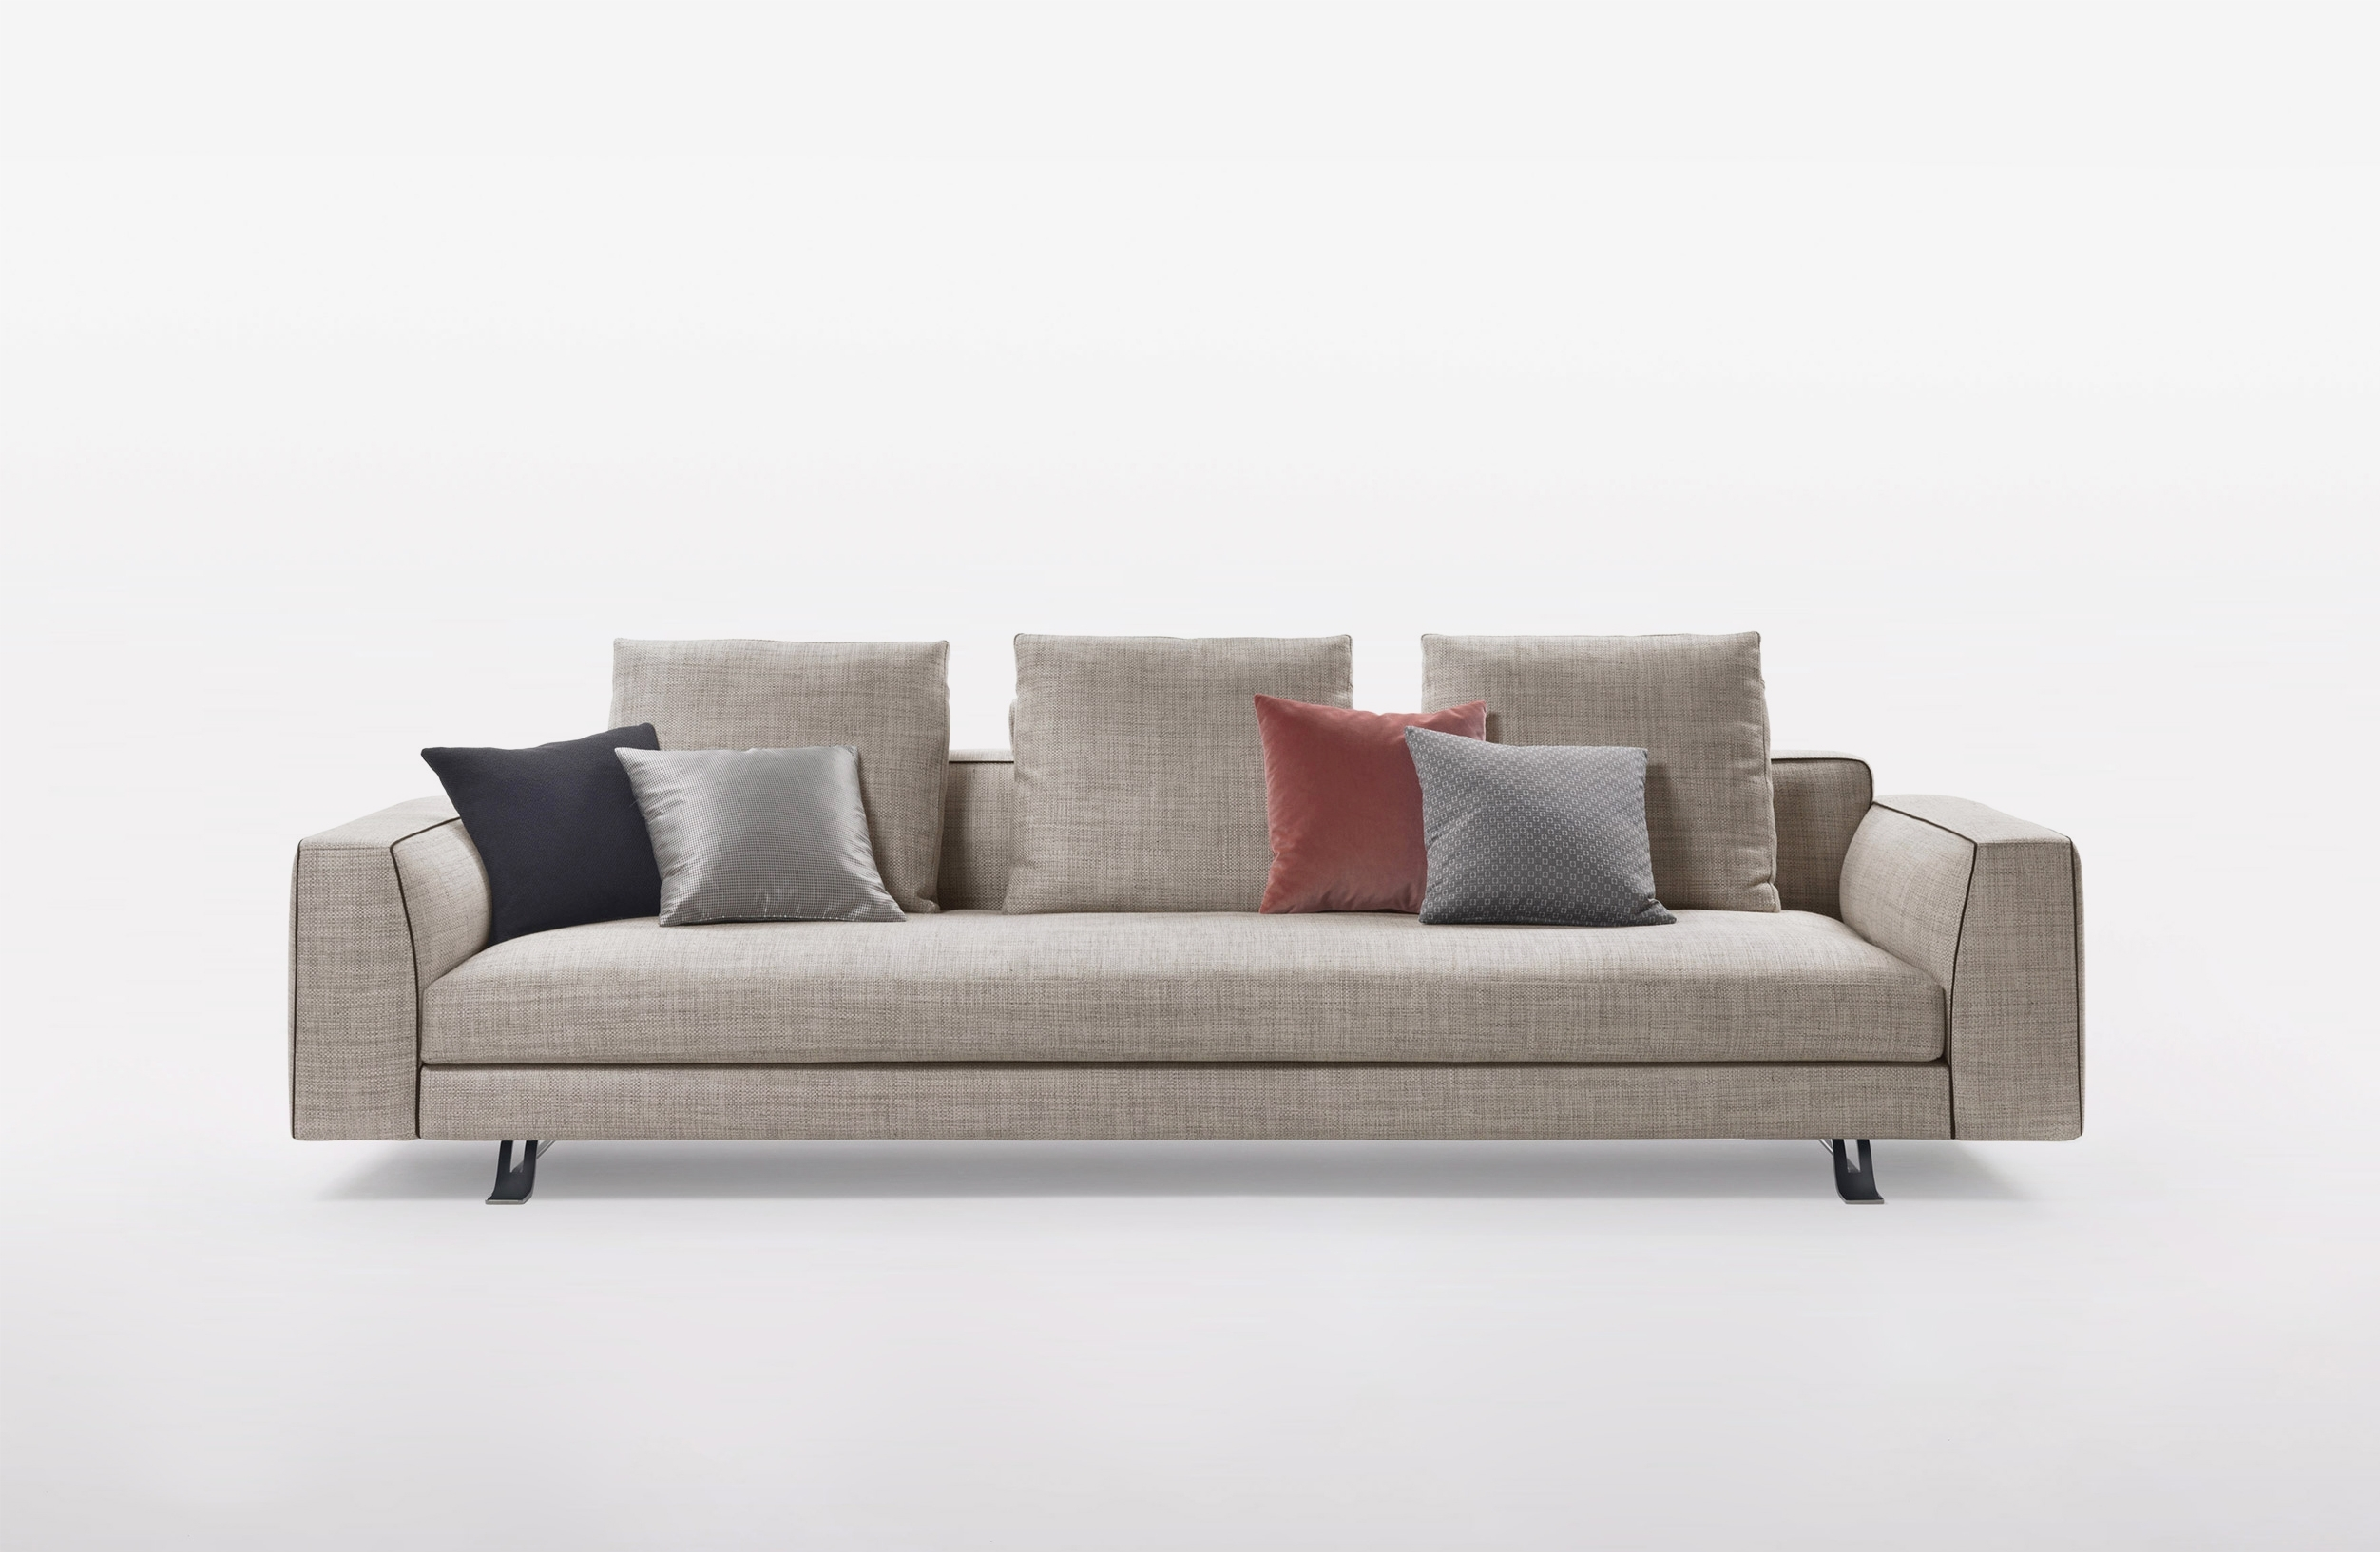 Burton – Toan Nguyen In Burton Leather 3 Piece Sectionals With Ottoman (Image 5 of 25)